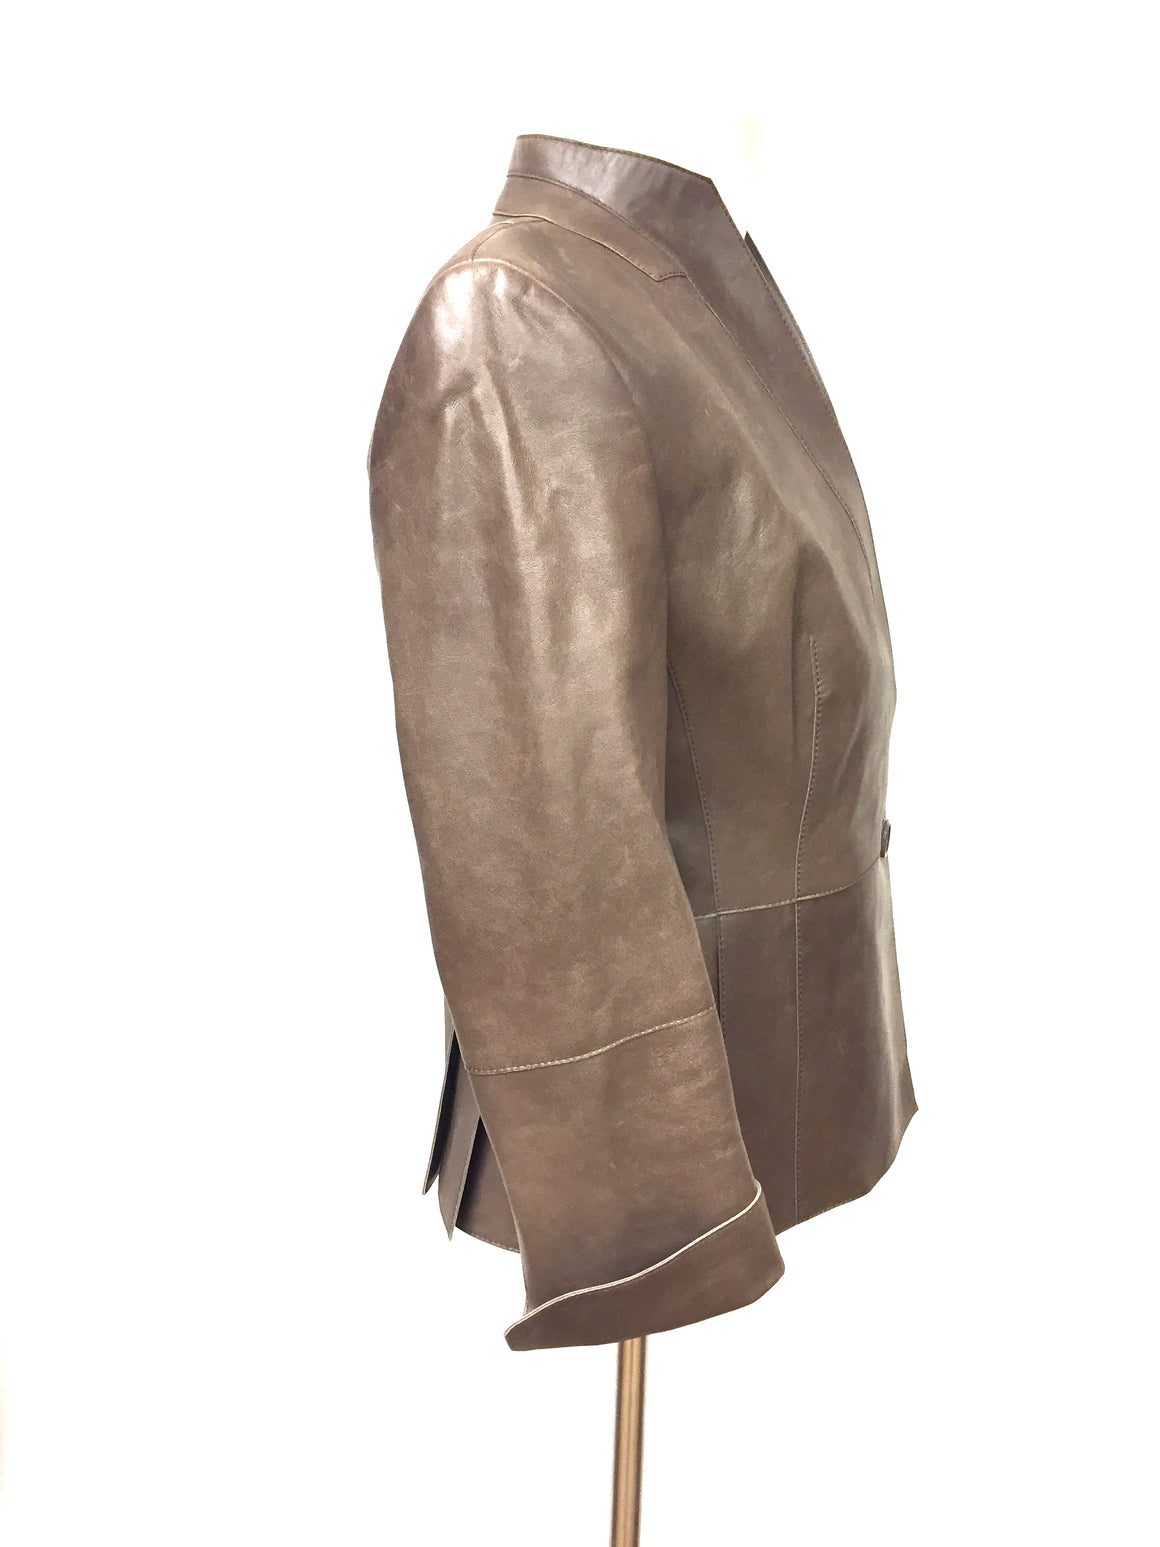 AKRIS Brown Distressed Leather Stand Collar Jacket Size: EU 36 / US 6